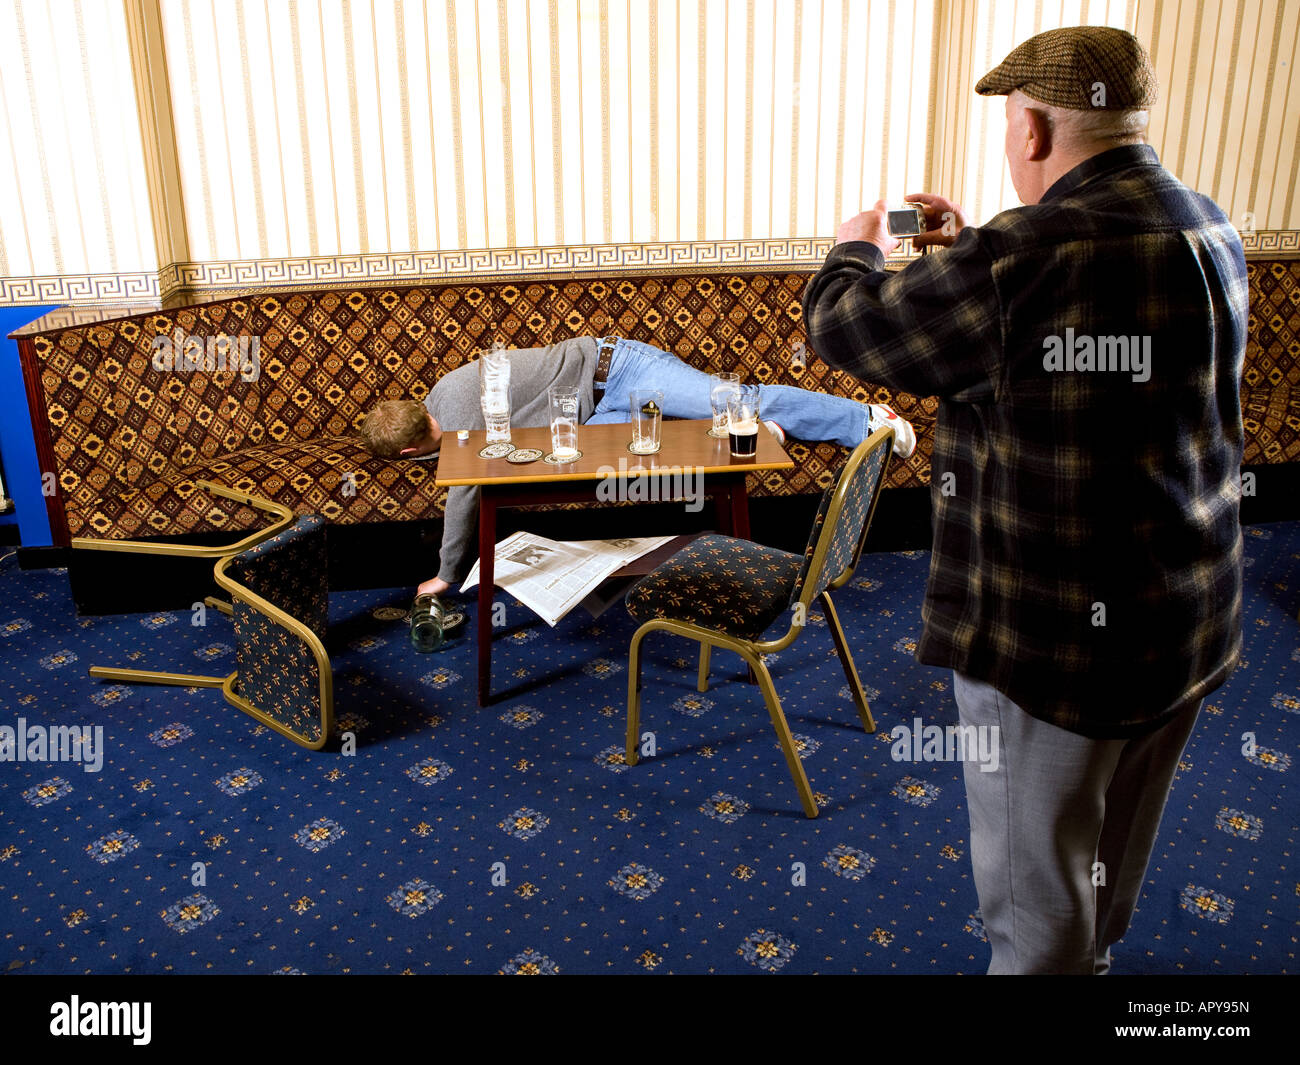 Old Man With Flat Cap Taking A Picture Of Drunk Young Man Using A